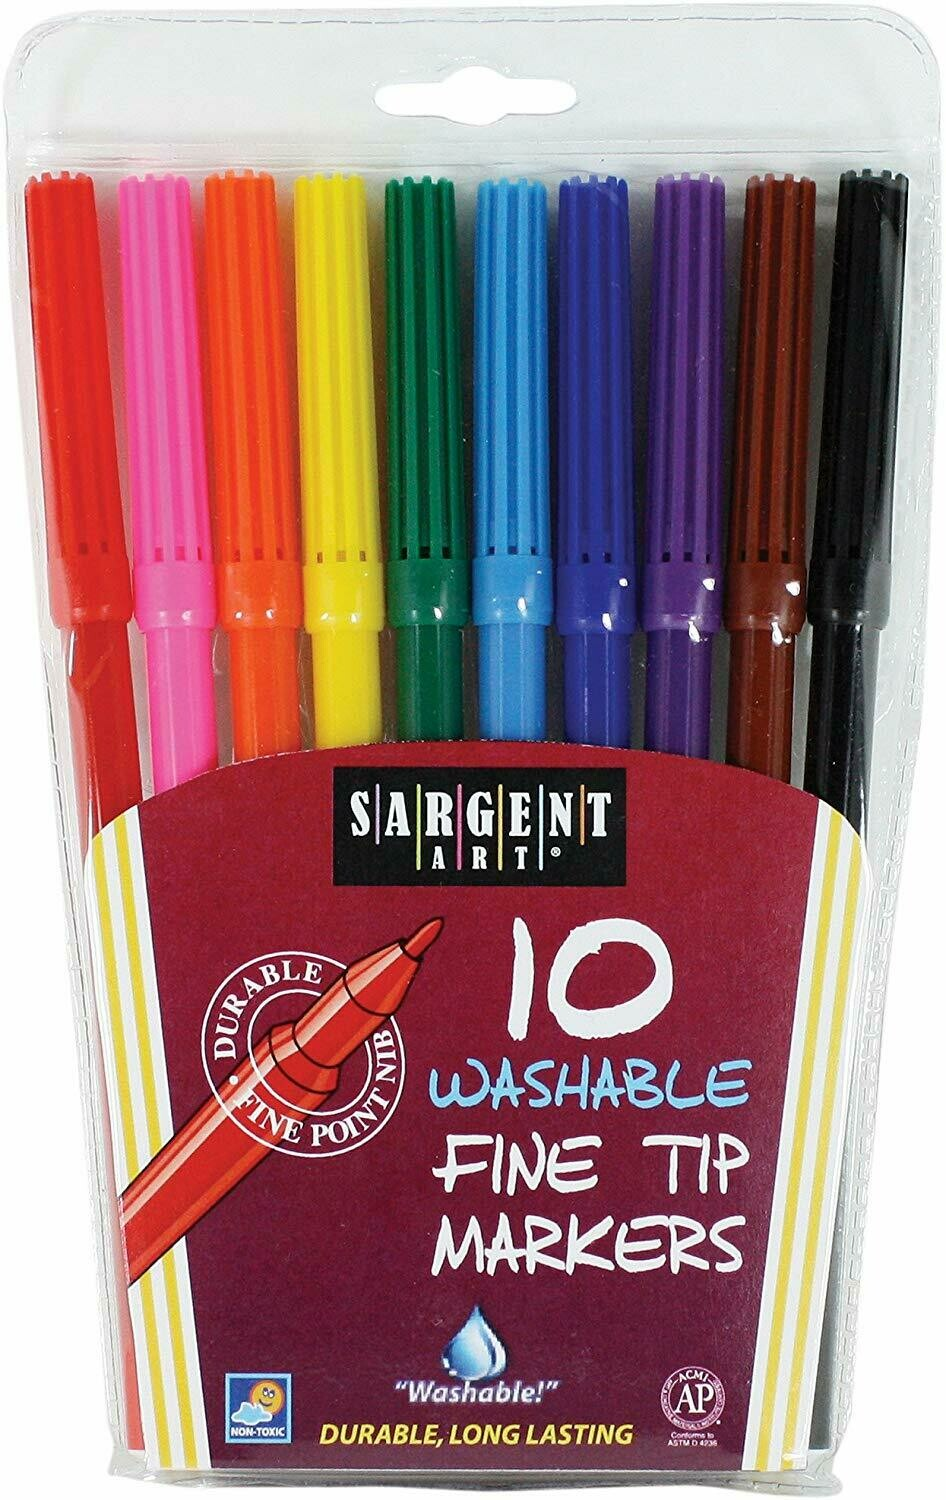 Sargent Art / 10 Count Washable Bullet Tip Fine Markers in a Pouch